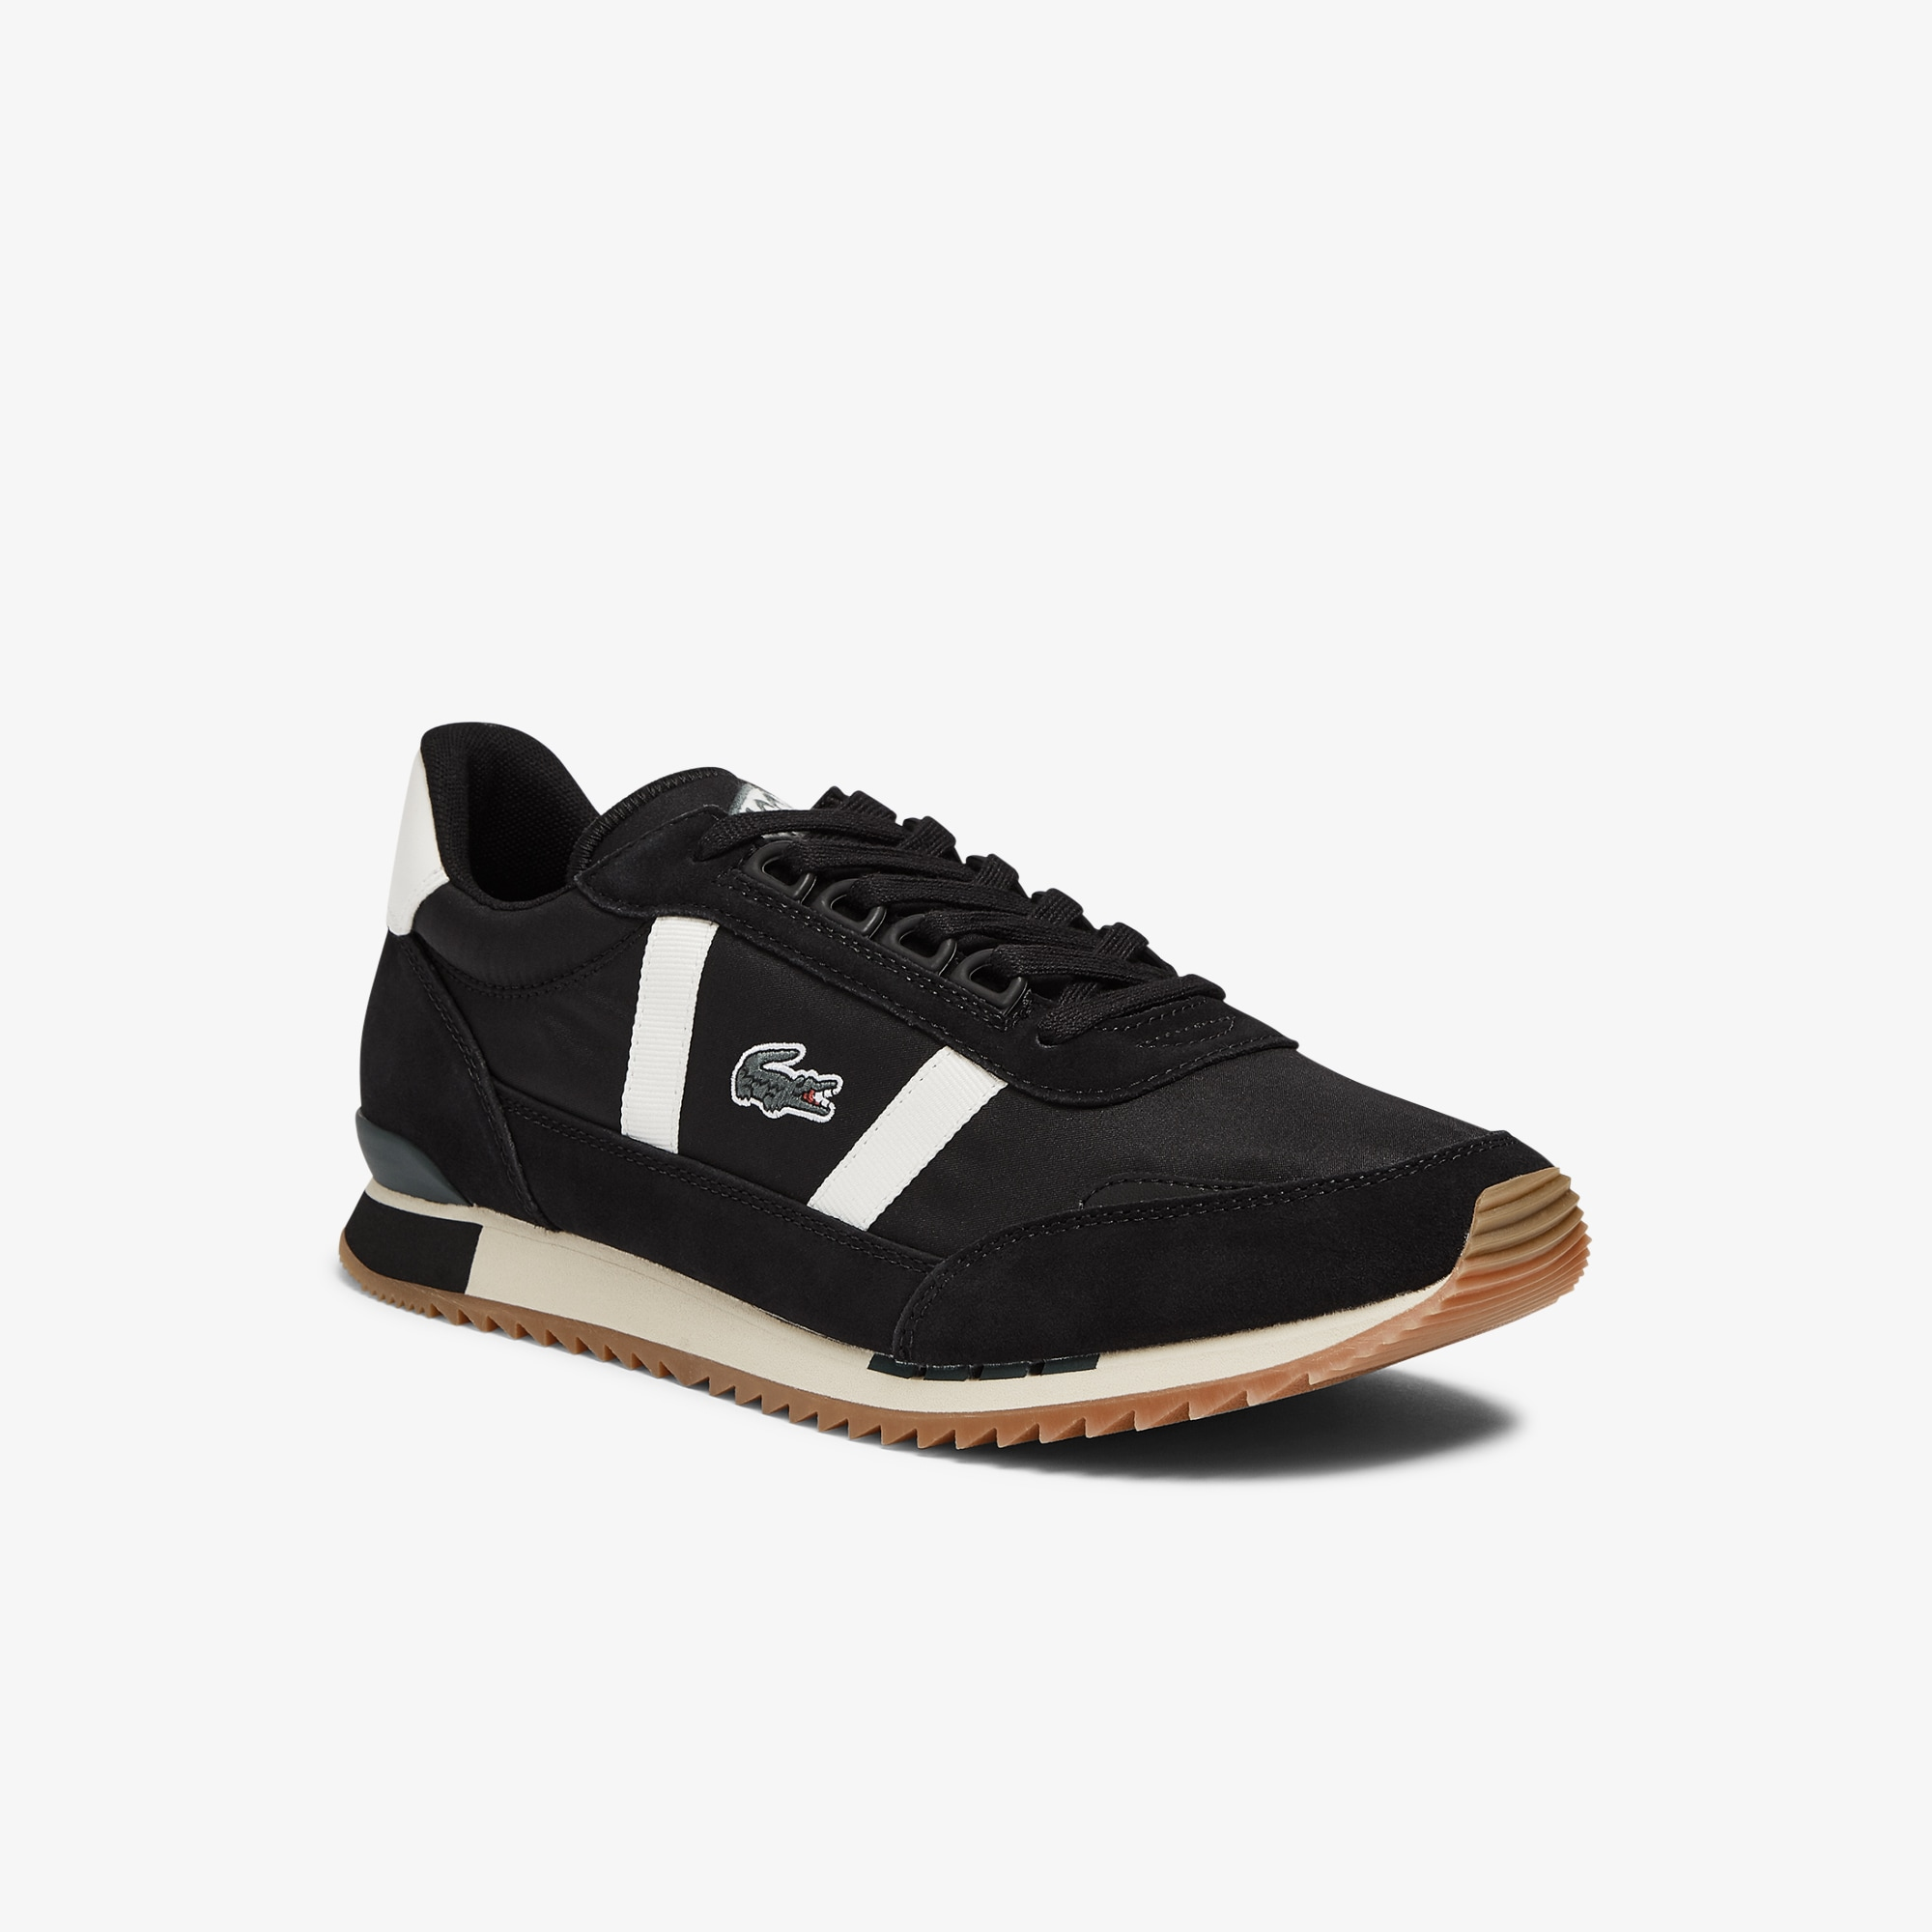 c79688f53f289 Lacoste shoes for men: Sneakers, Trainers, Boots | LACOSTE